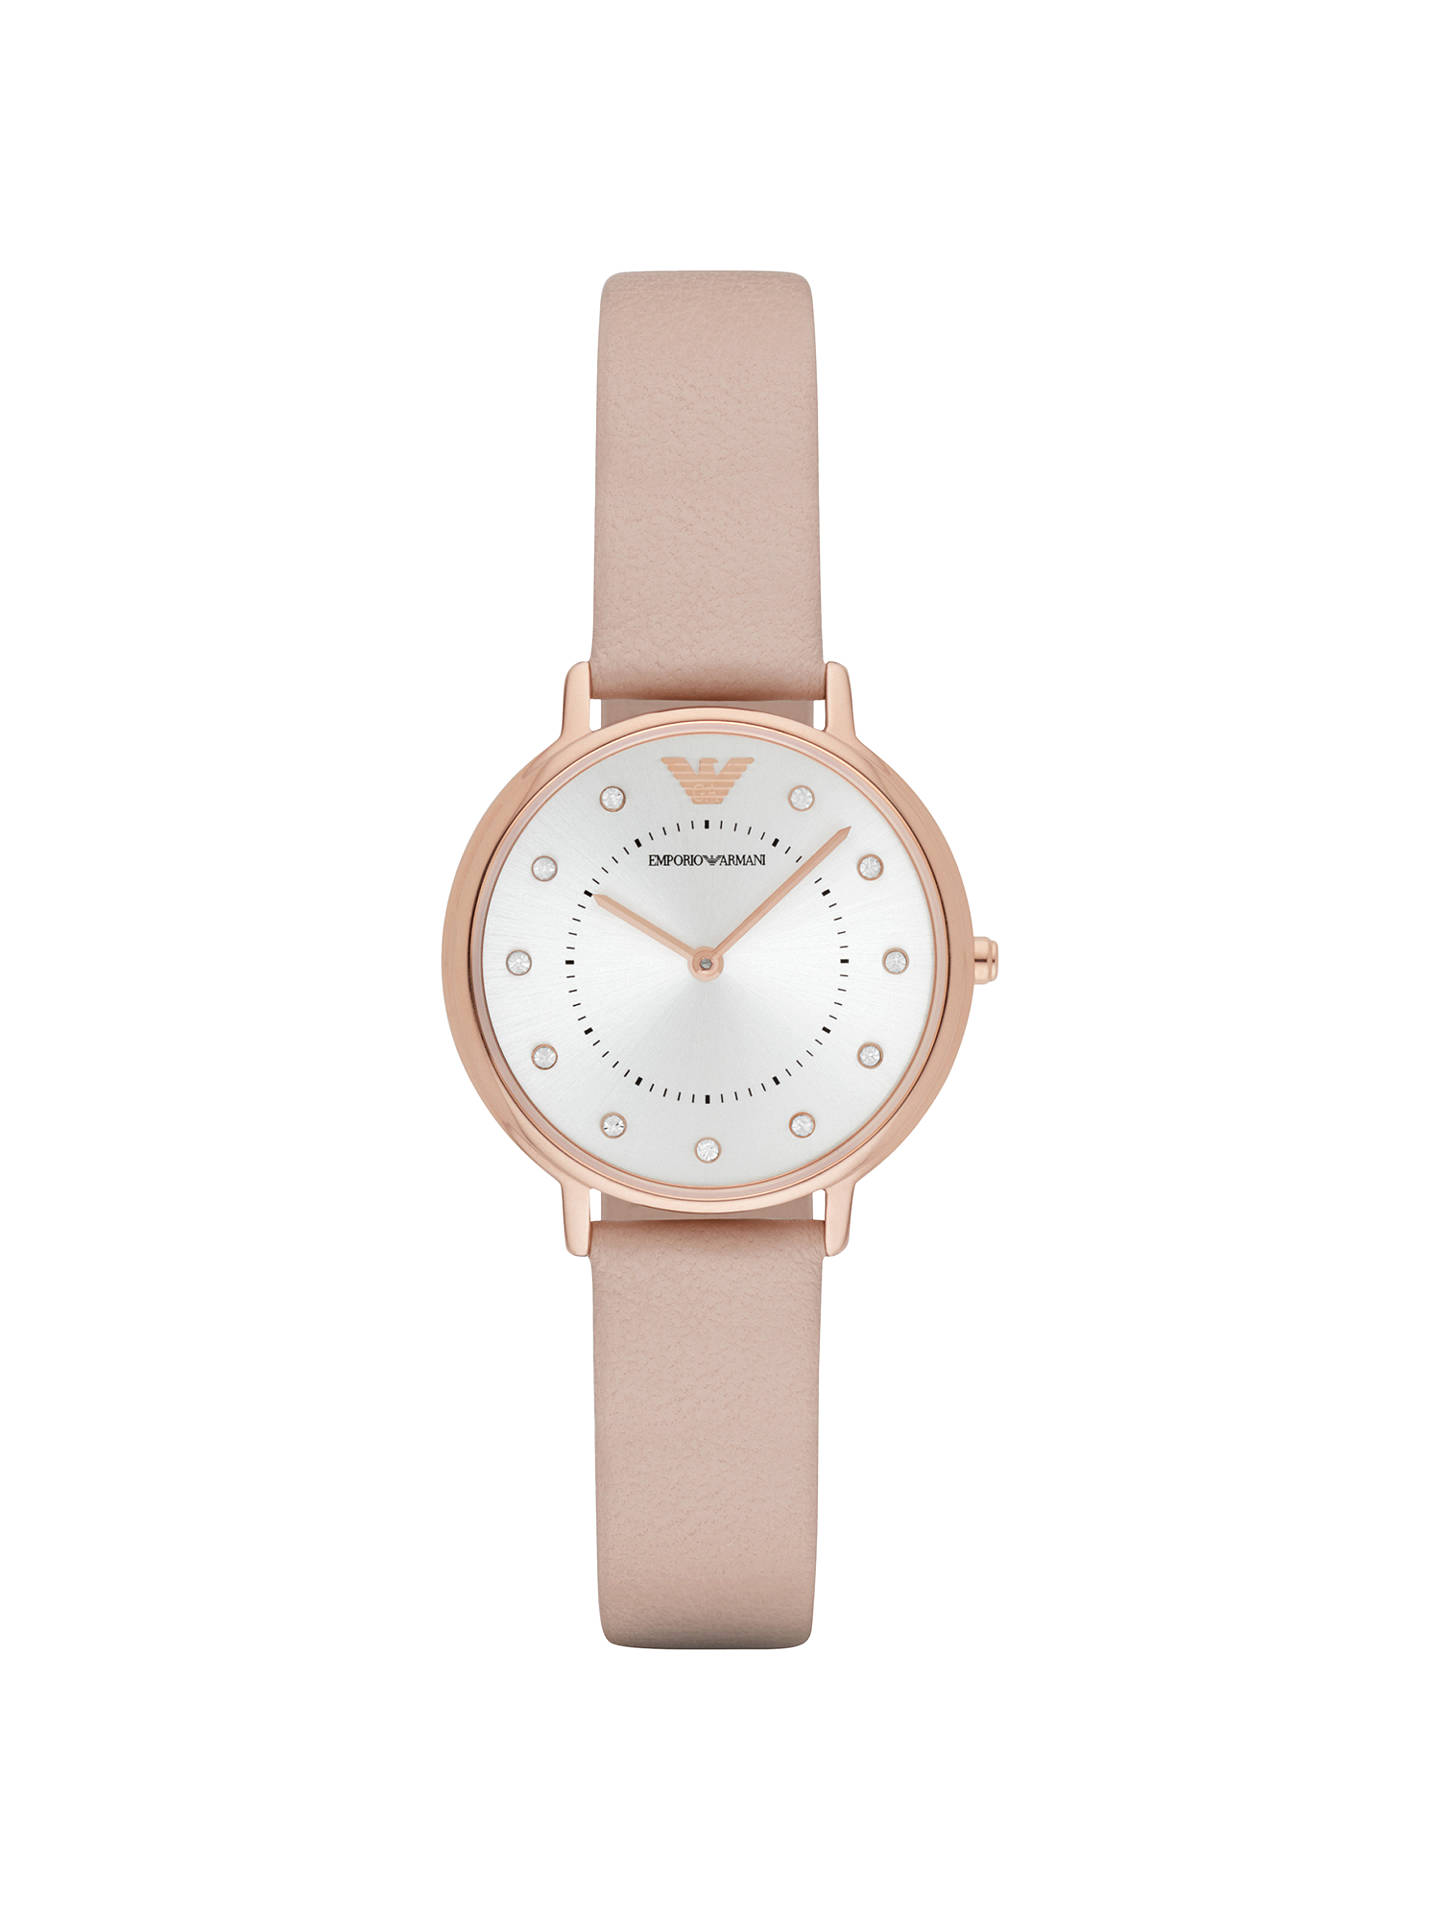 d4e566ed3b Buy Emporio Armani AR2510 Women's Crystal Leather Strap Watch, Blush  Pink/Silver Online at ...